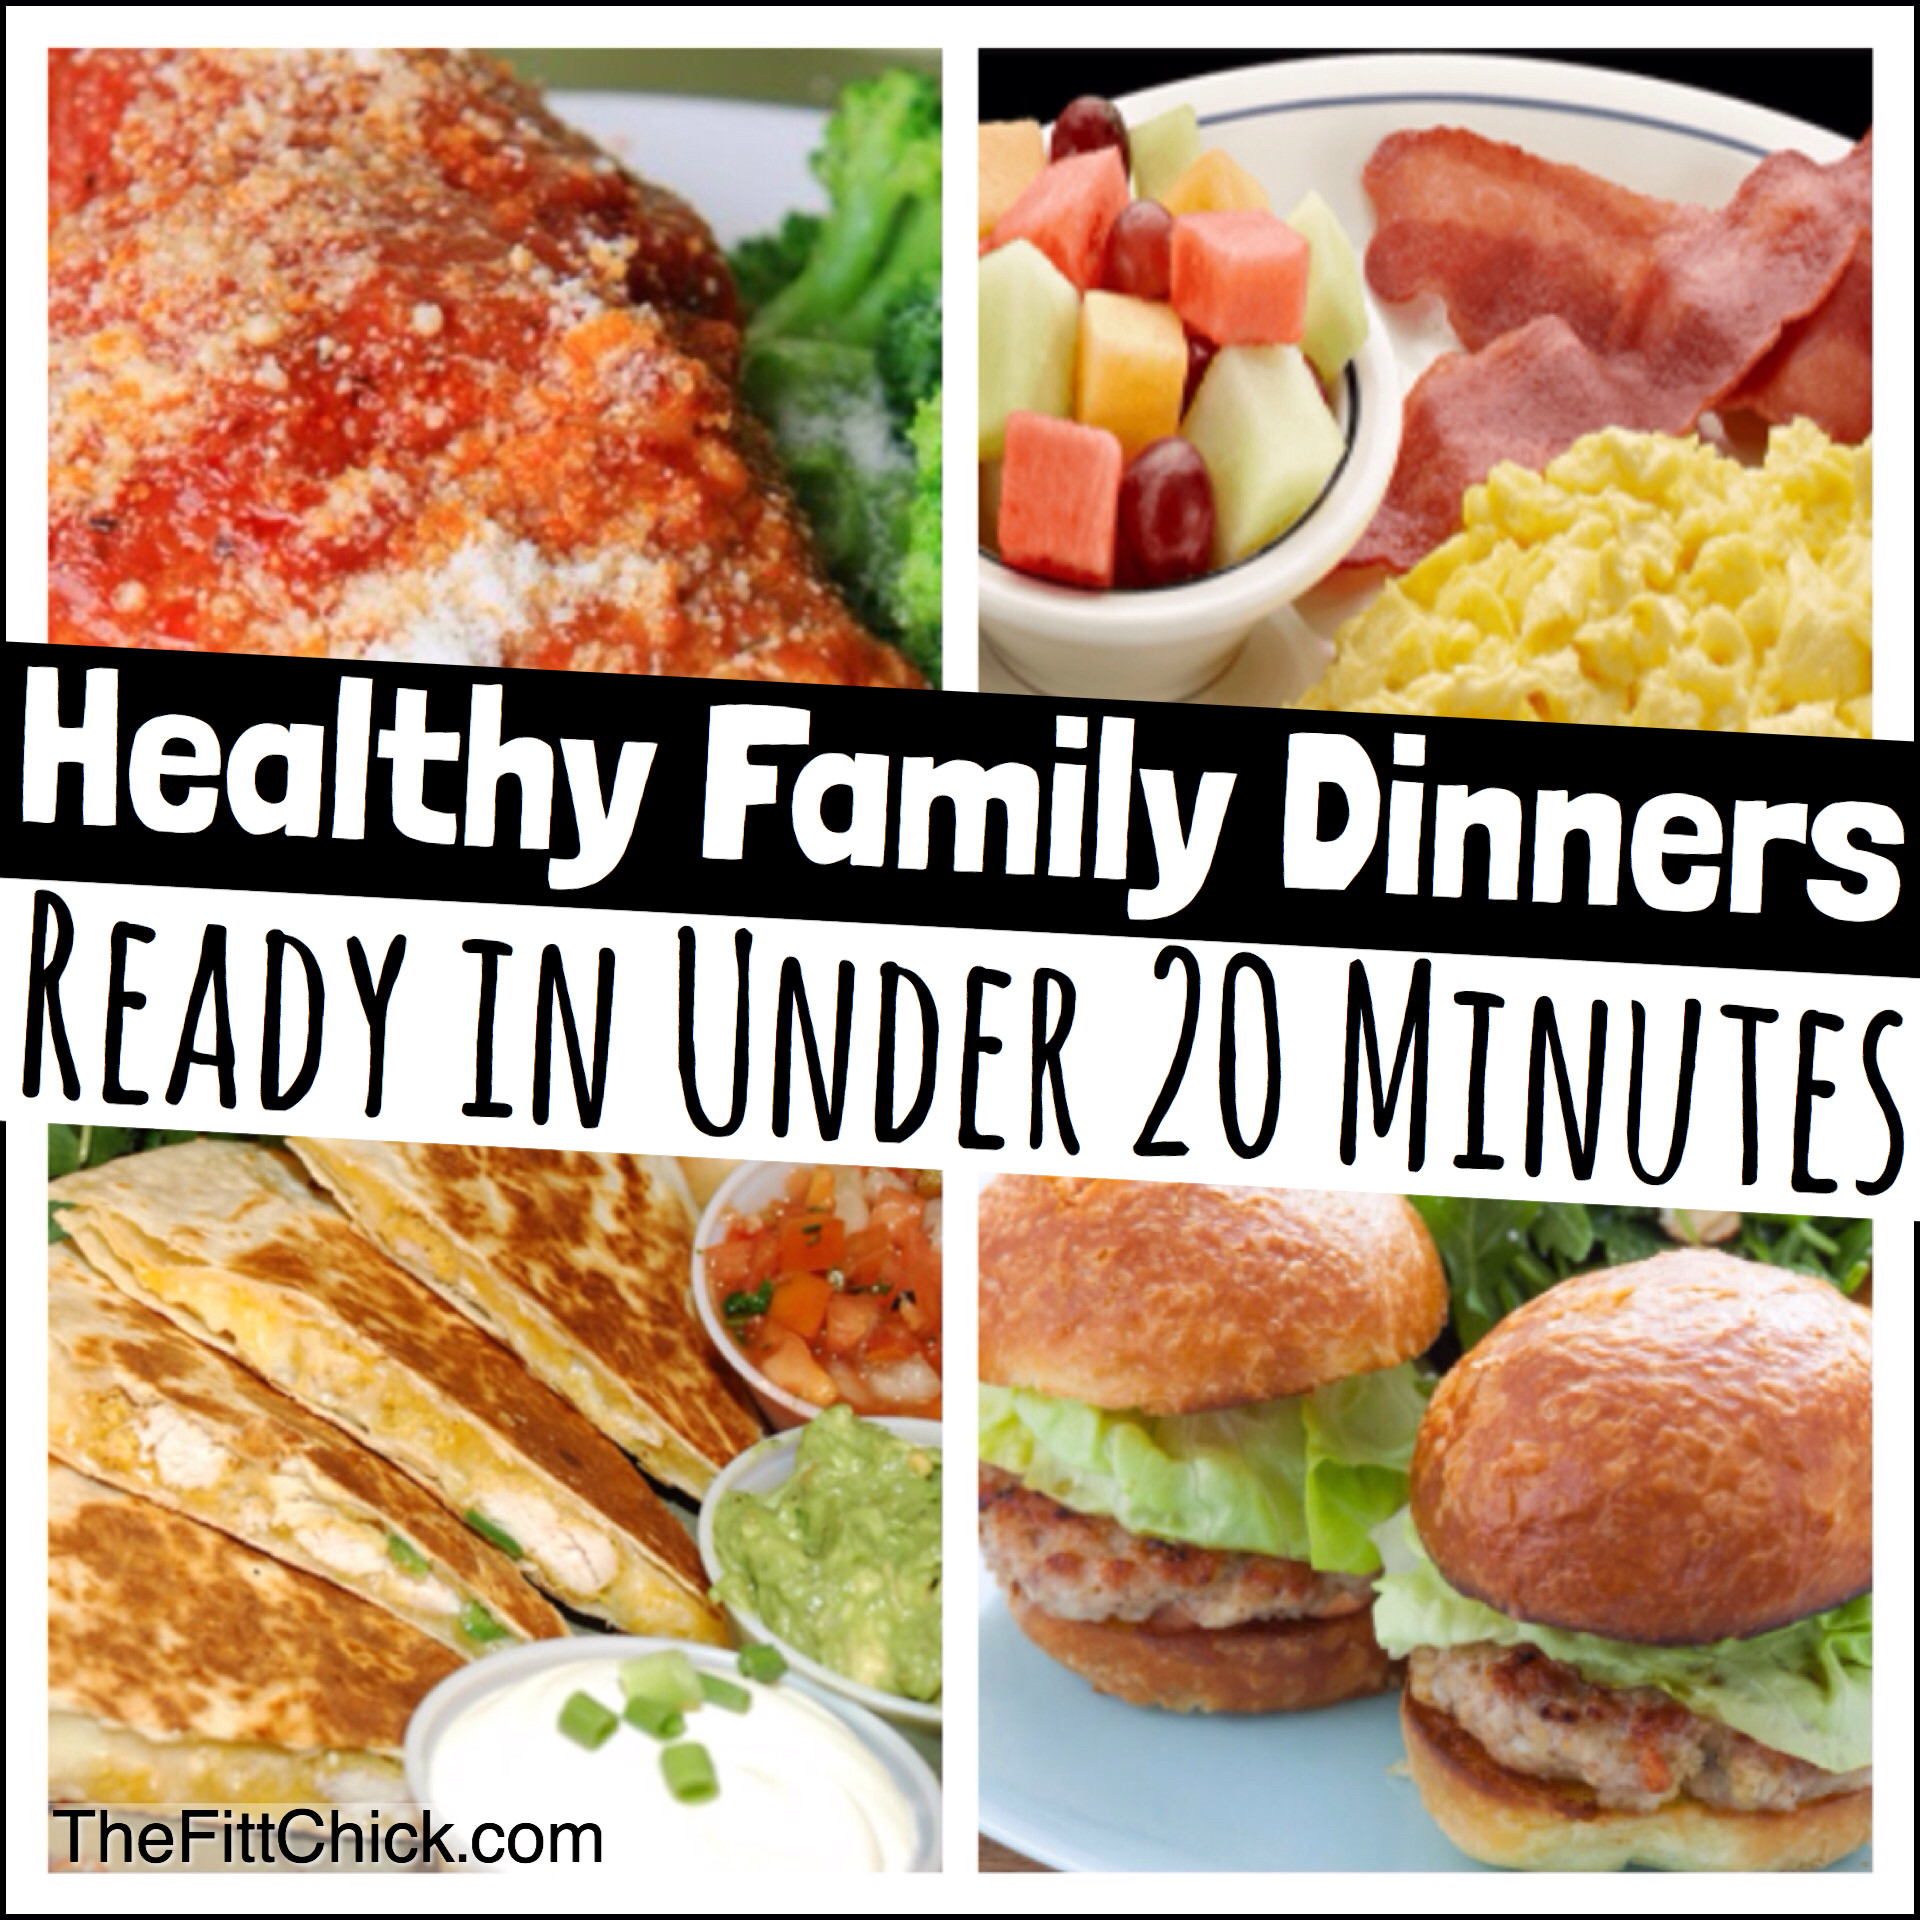 Healthy Dinner Ideas For Family  Healthy Family dinners in under 20 minutes